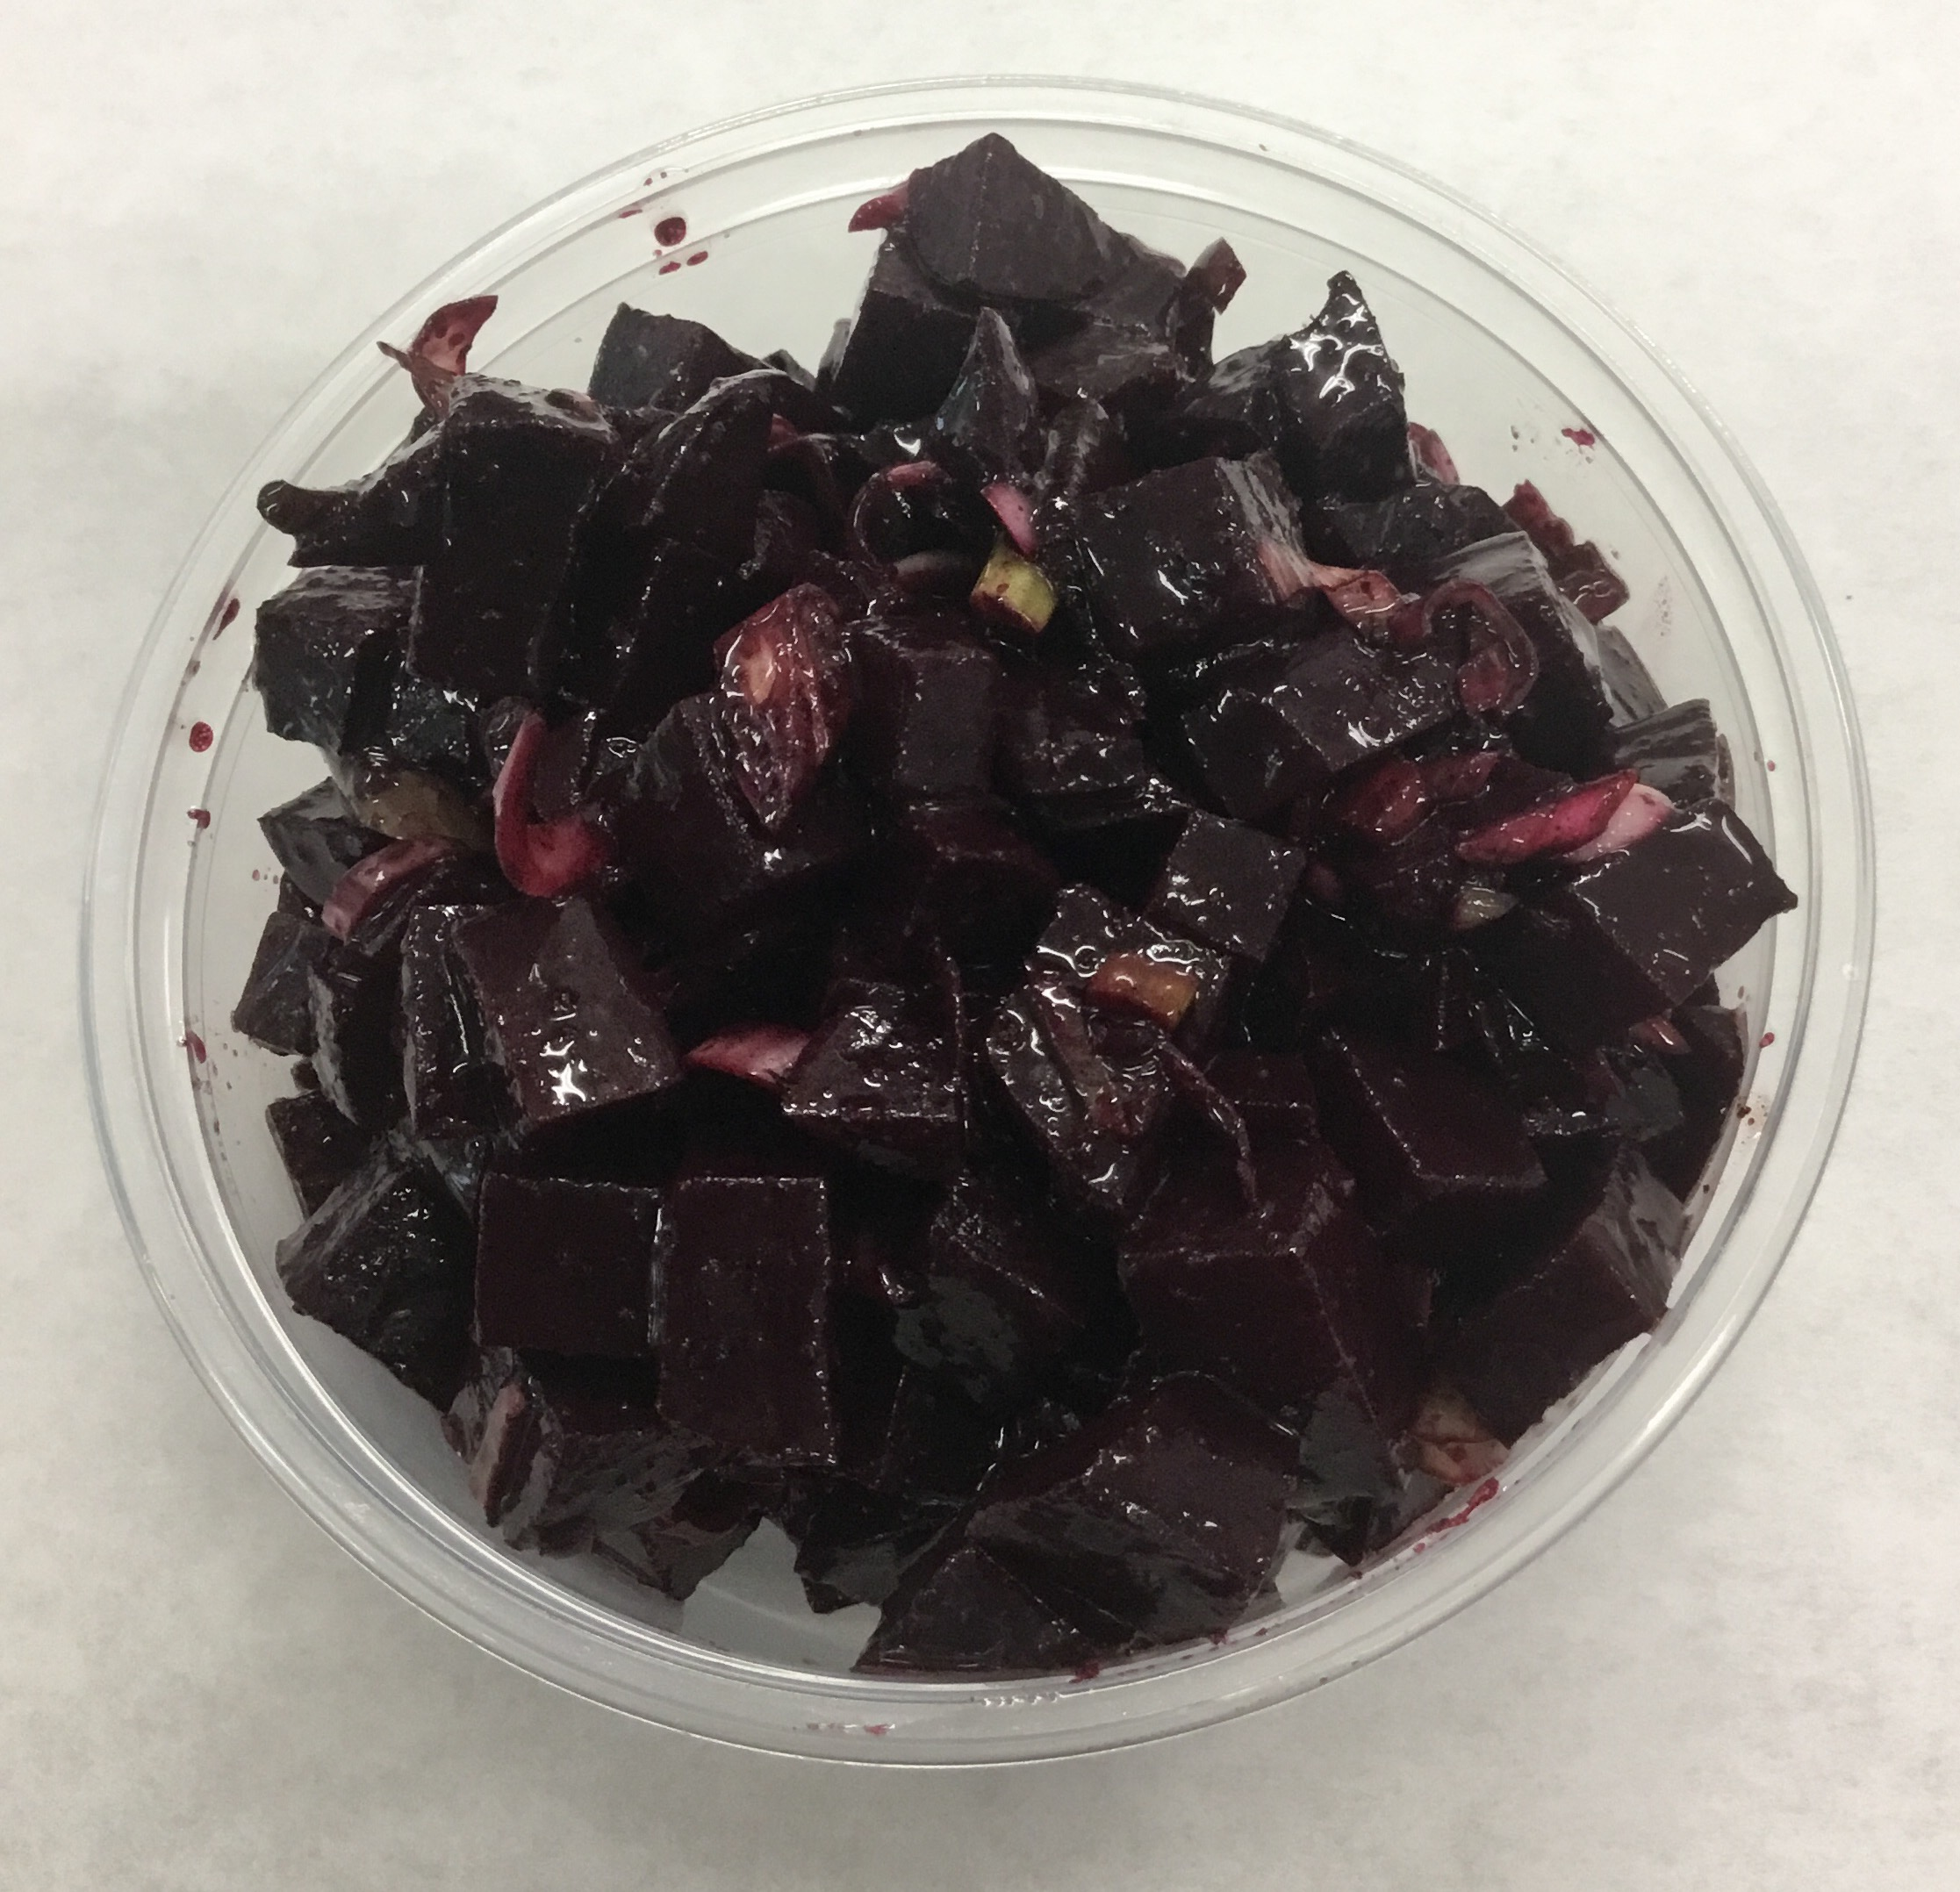 Red beets and scallions with black sesame seed and chipotle dressing.